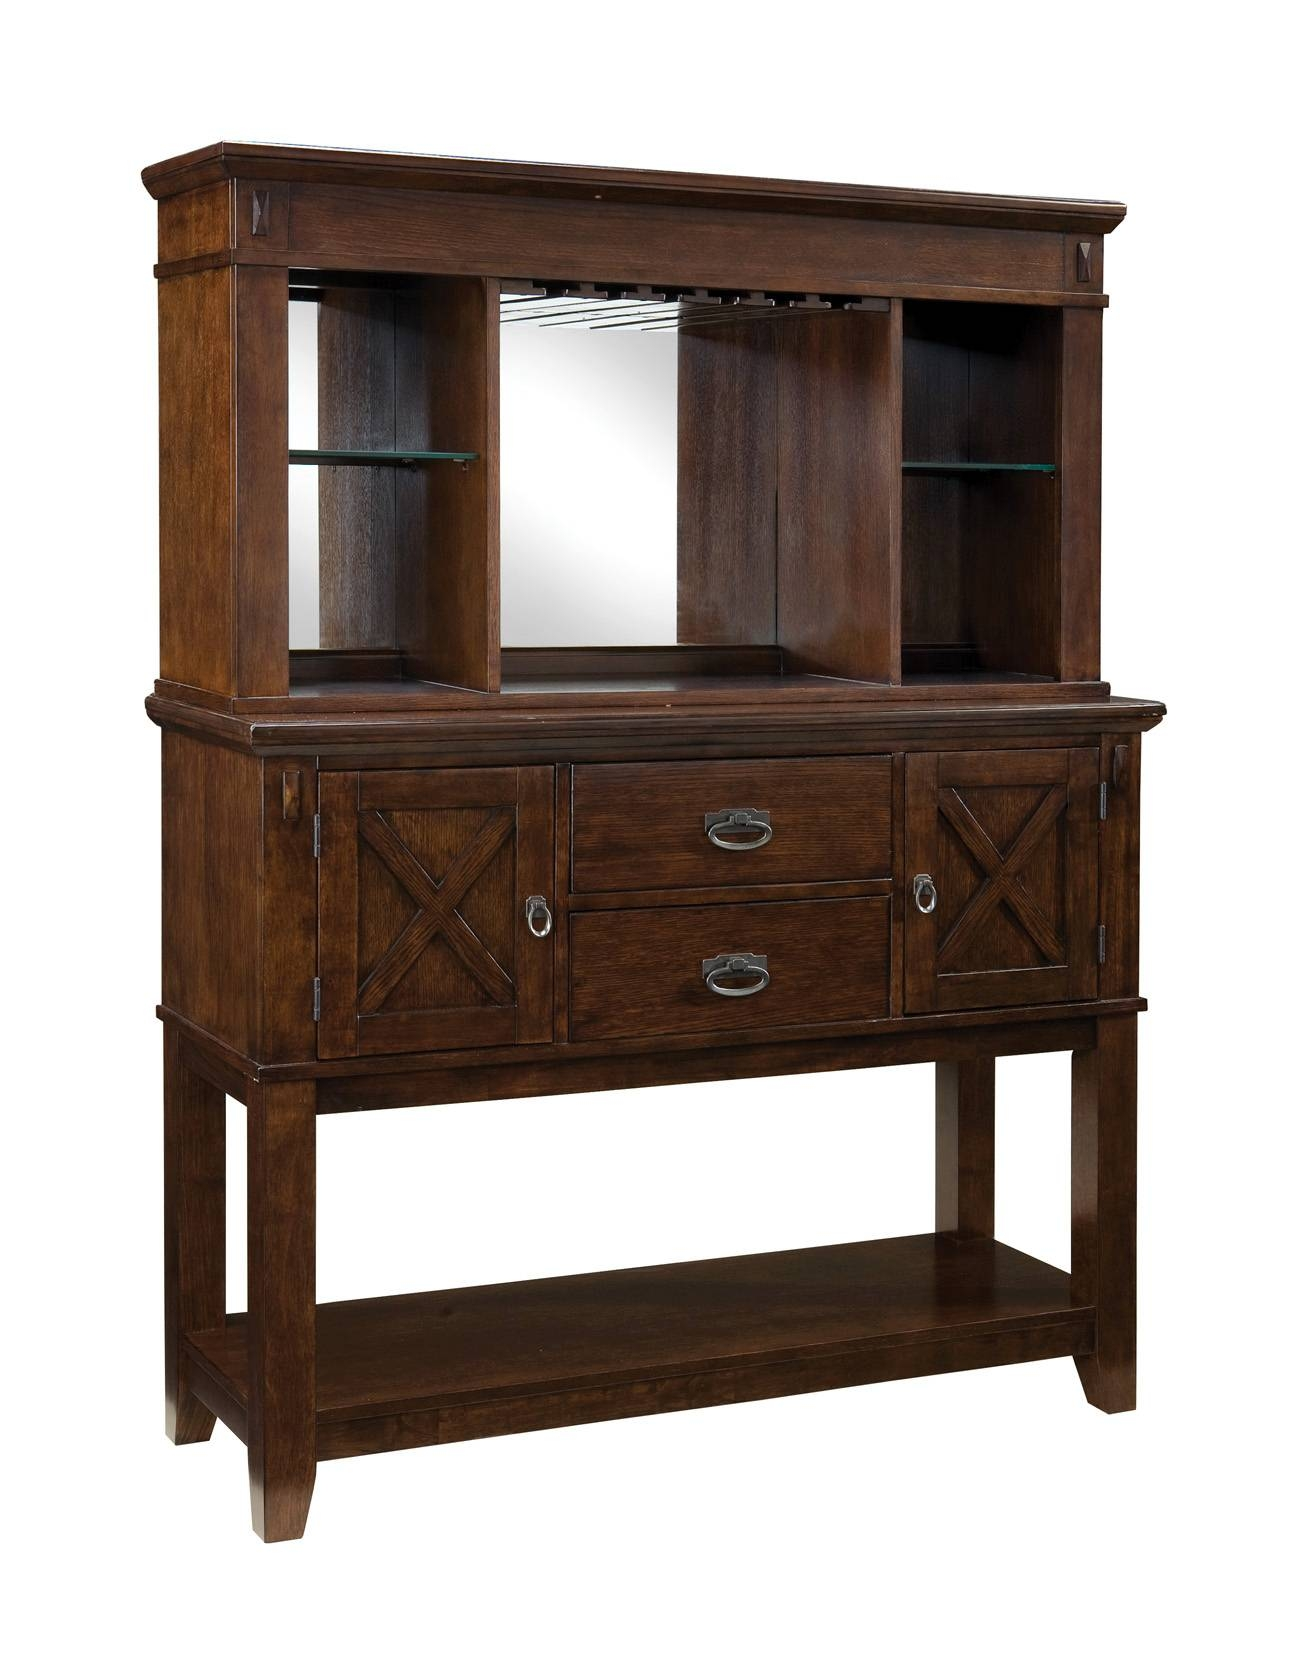 Sonoma Sideboard With Hutch Within Sideboard With Hutch (#20 of 20)